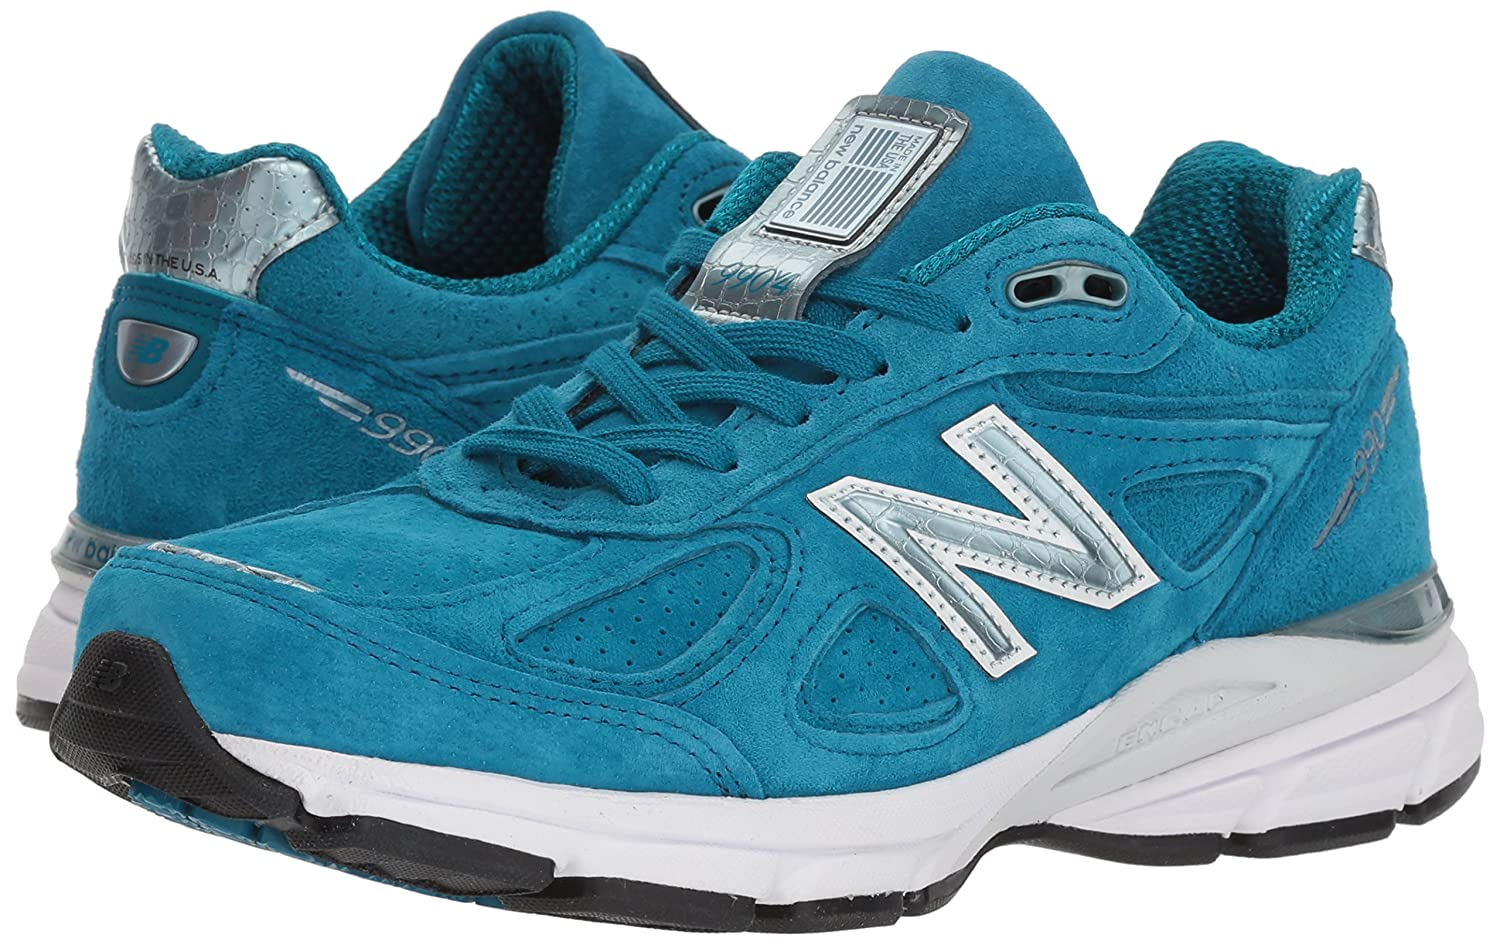 New Balance Women's 990v4 Running Shoe B071ZZGPSS 10.5 B(M) US|Lake Blue/Lake Blue